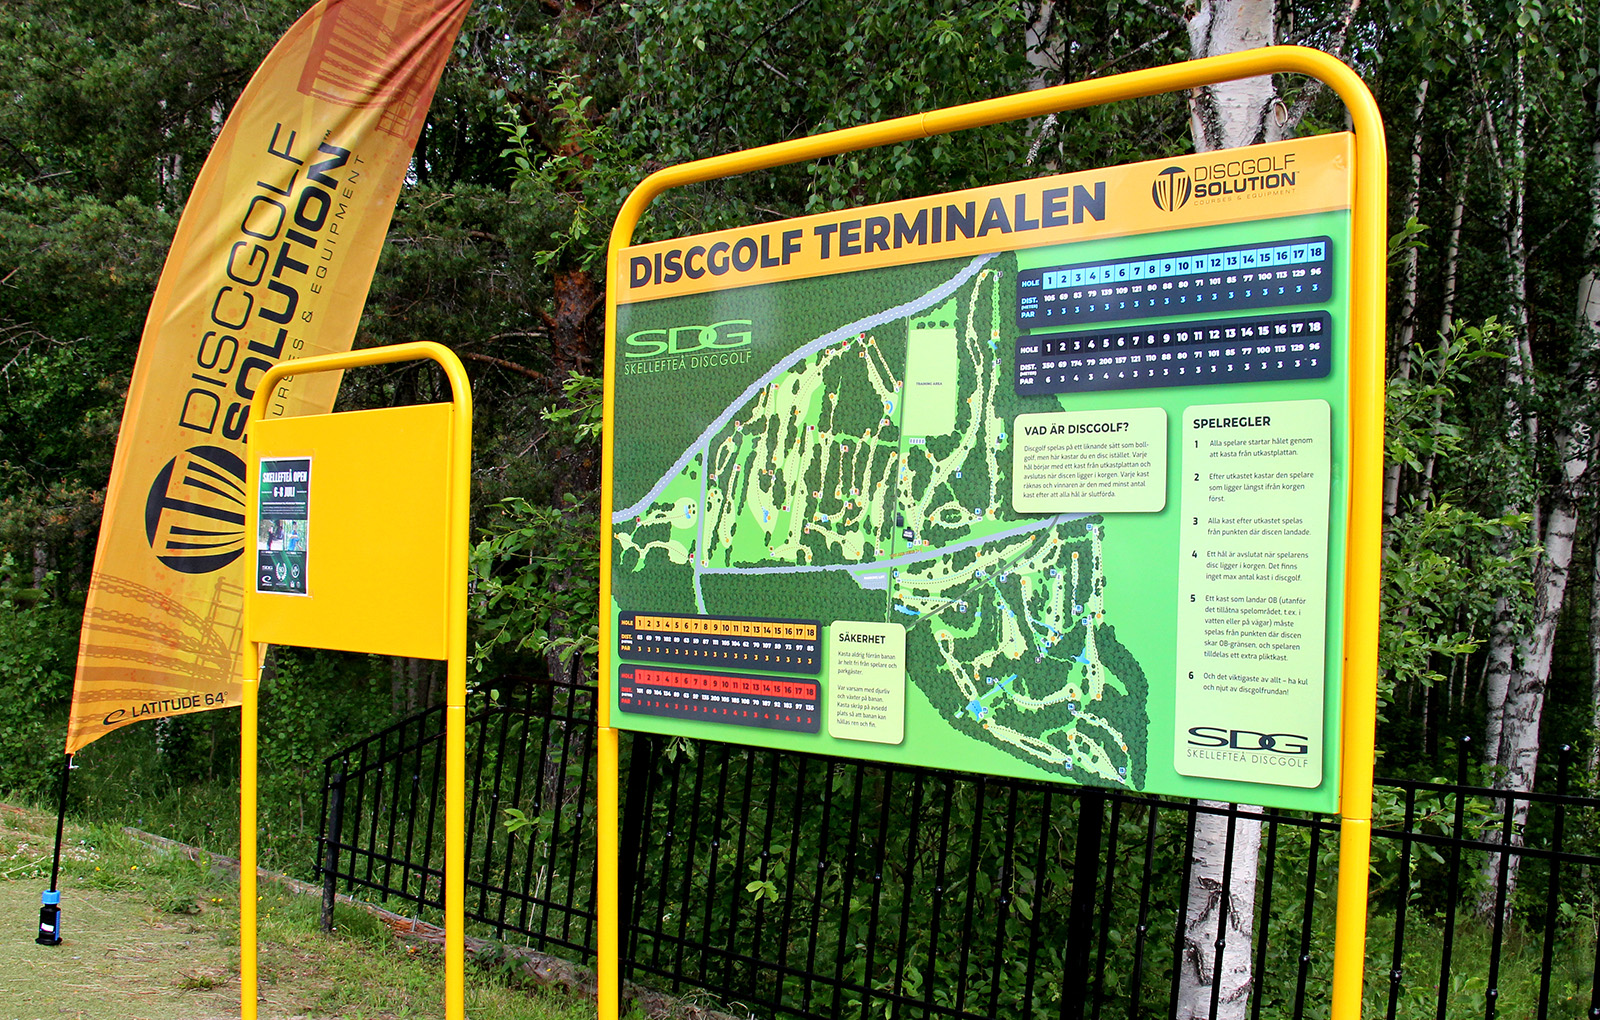 Disc Golf Solution Info Boards